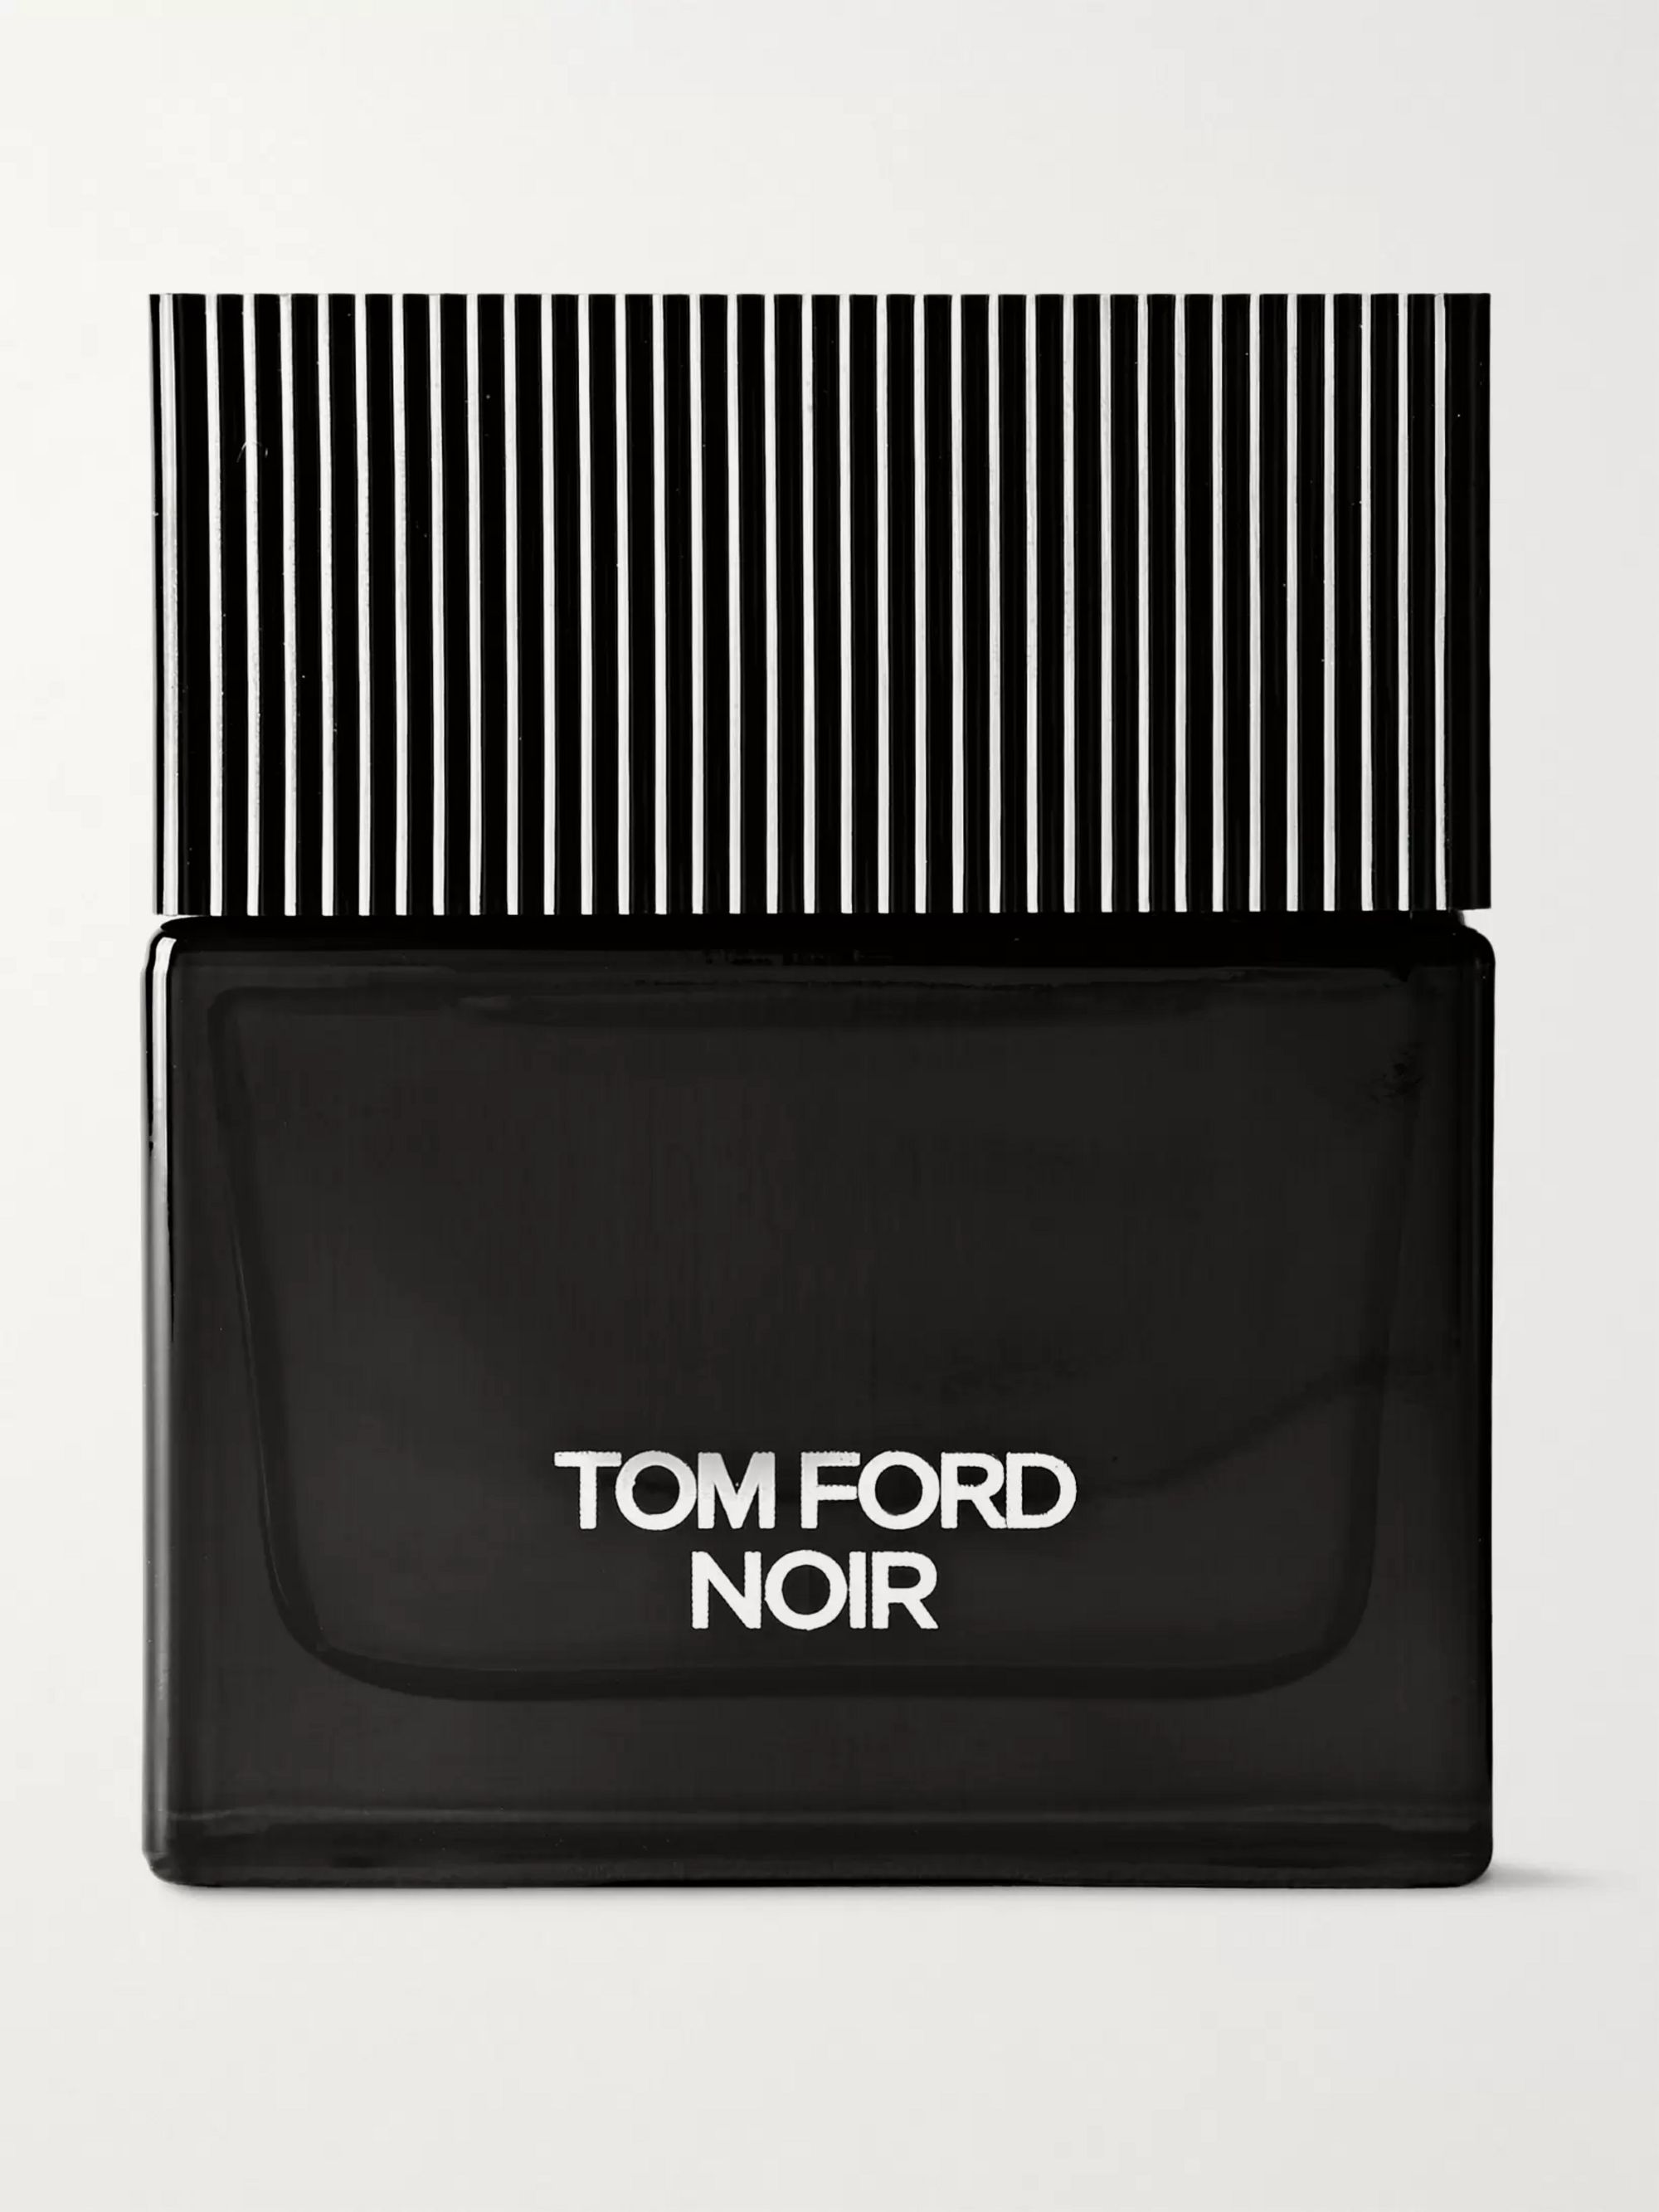 TOM FORD BEAUTY Tom Ford Noir Eau de Parfum - Italian Bergamot, Black Pepper & Nutmeg, 50ml